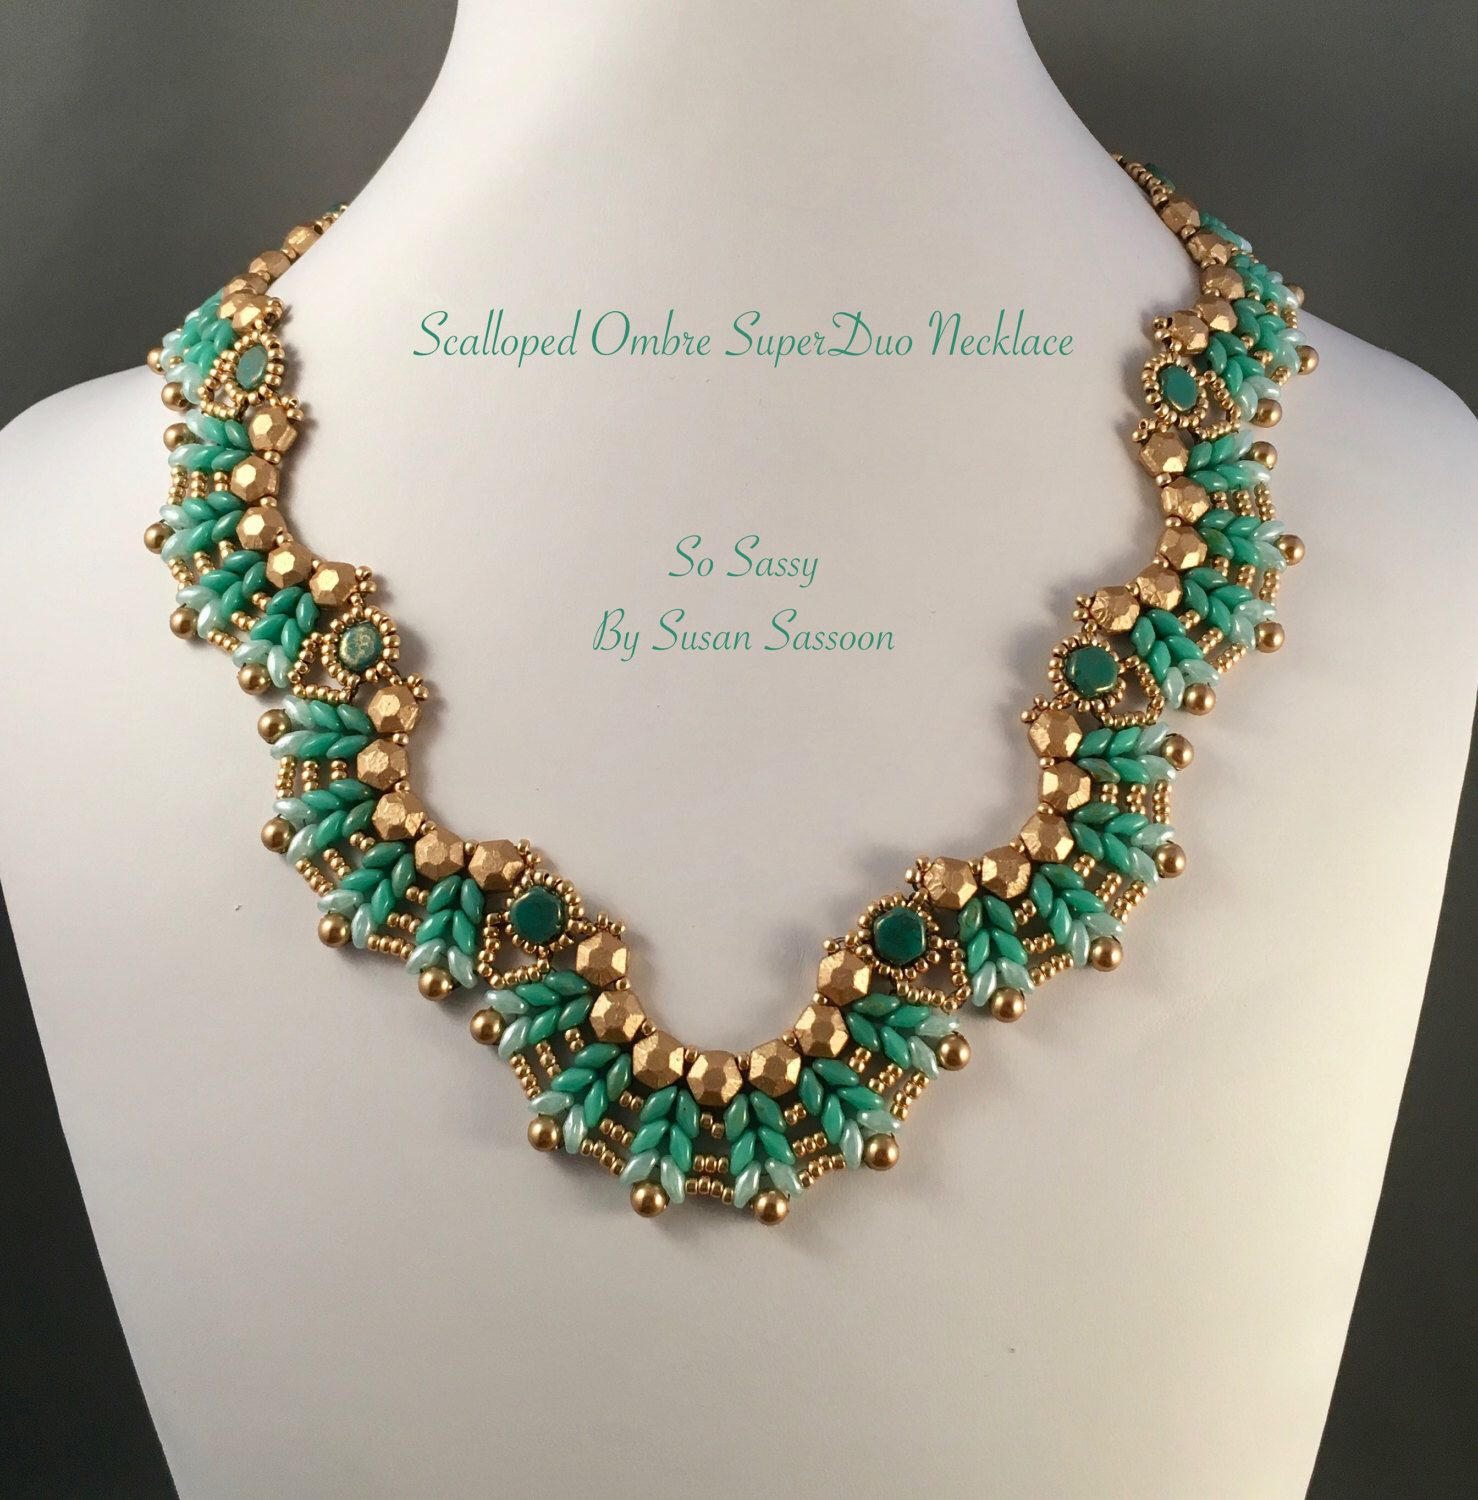 Ombre Scalloped SuperDuo Necklace Tutorial | Ombre, Etsy and ...